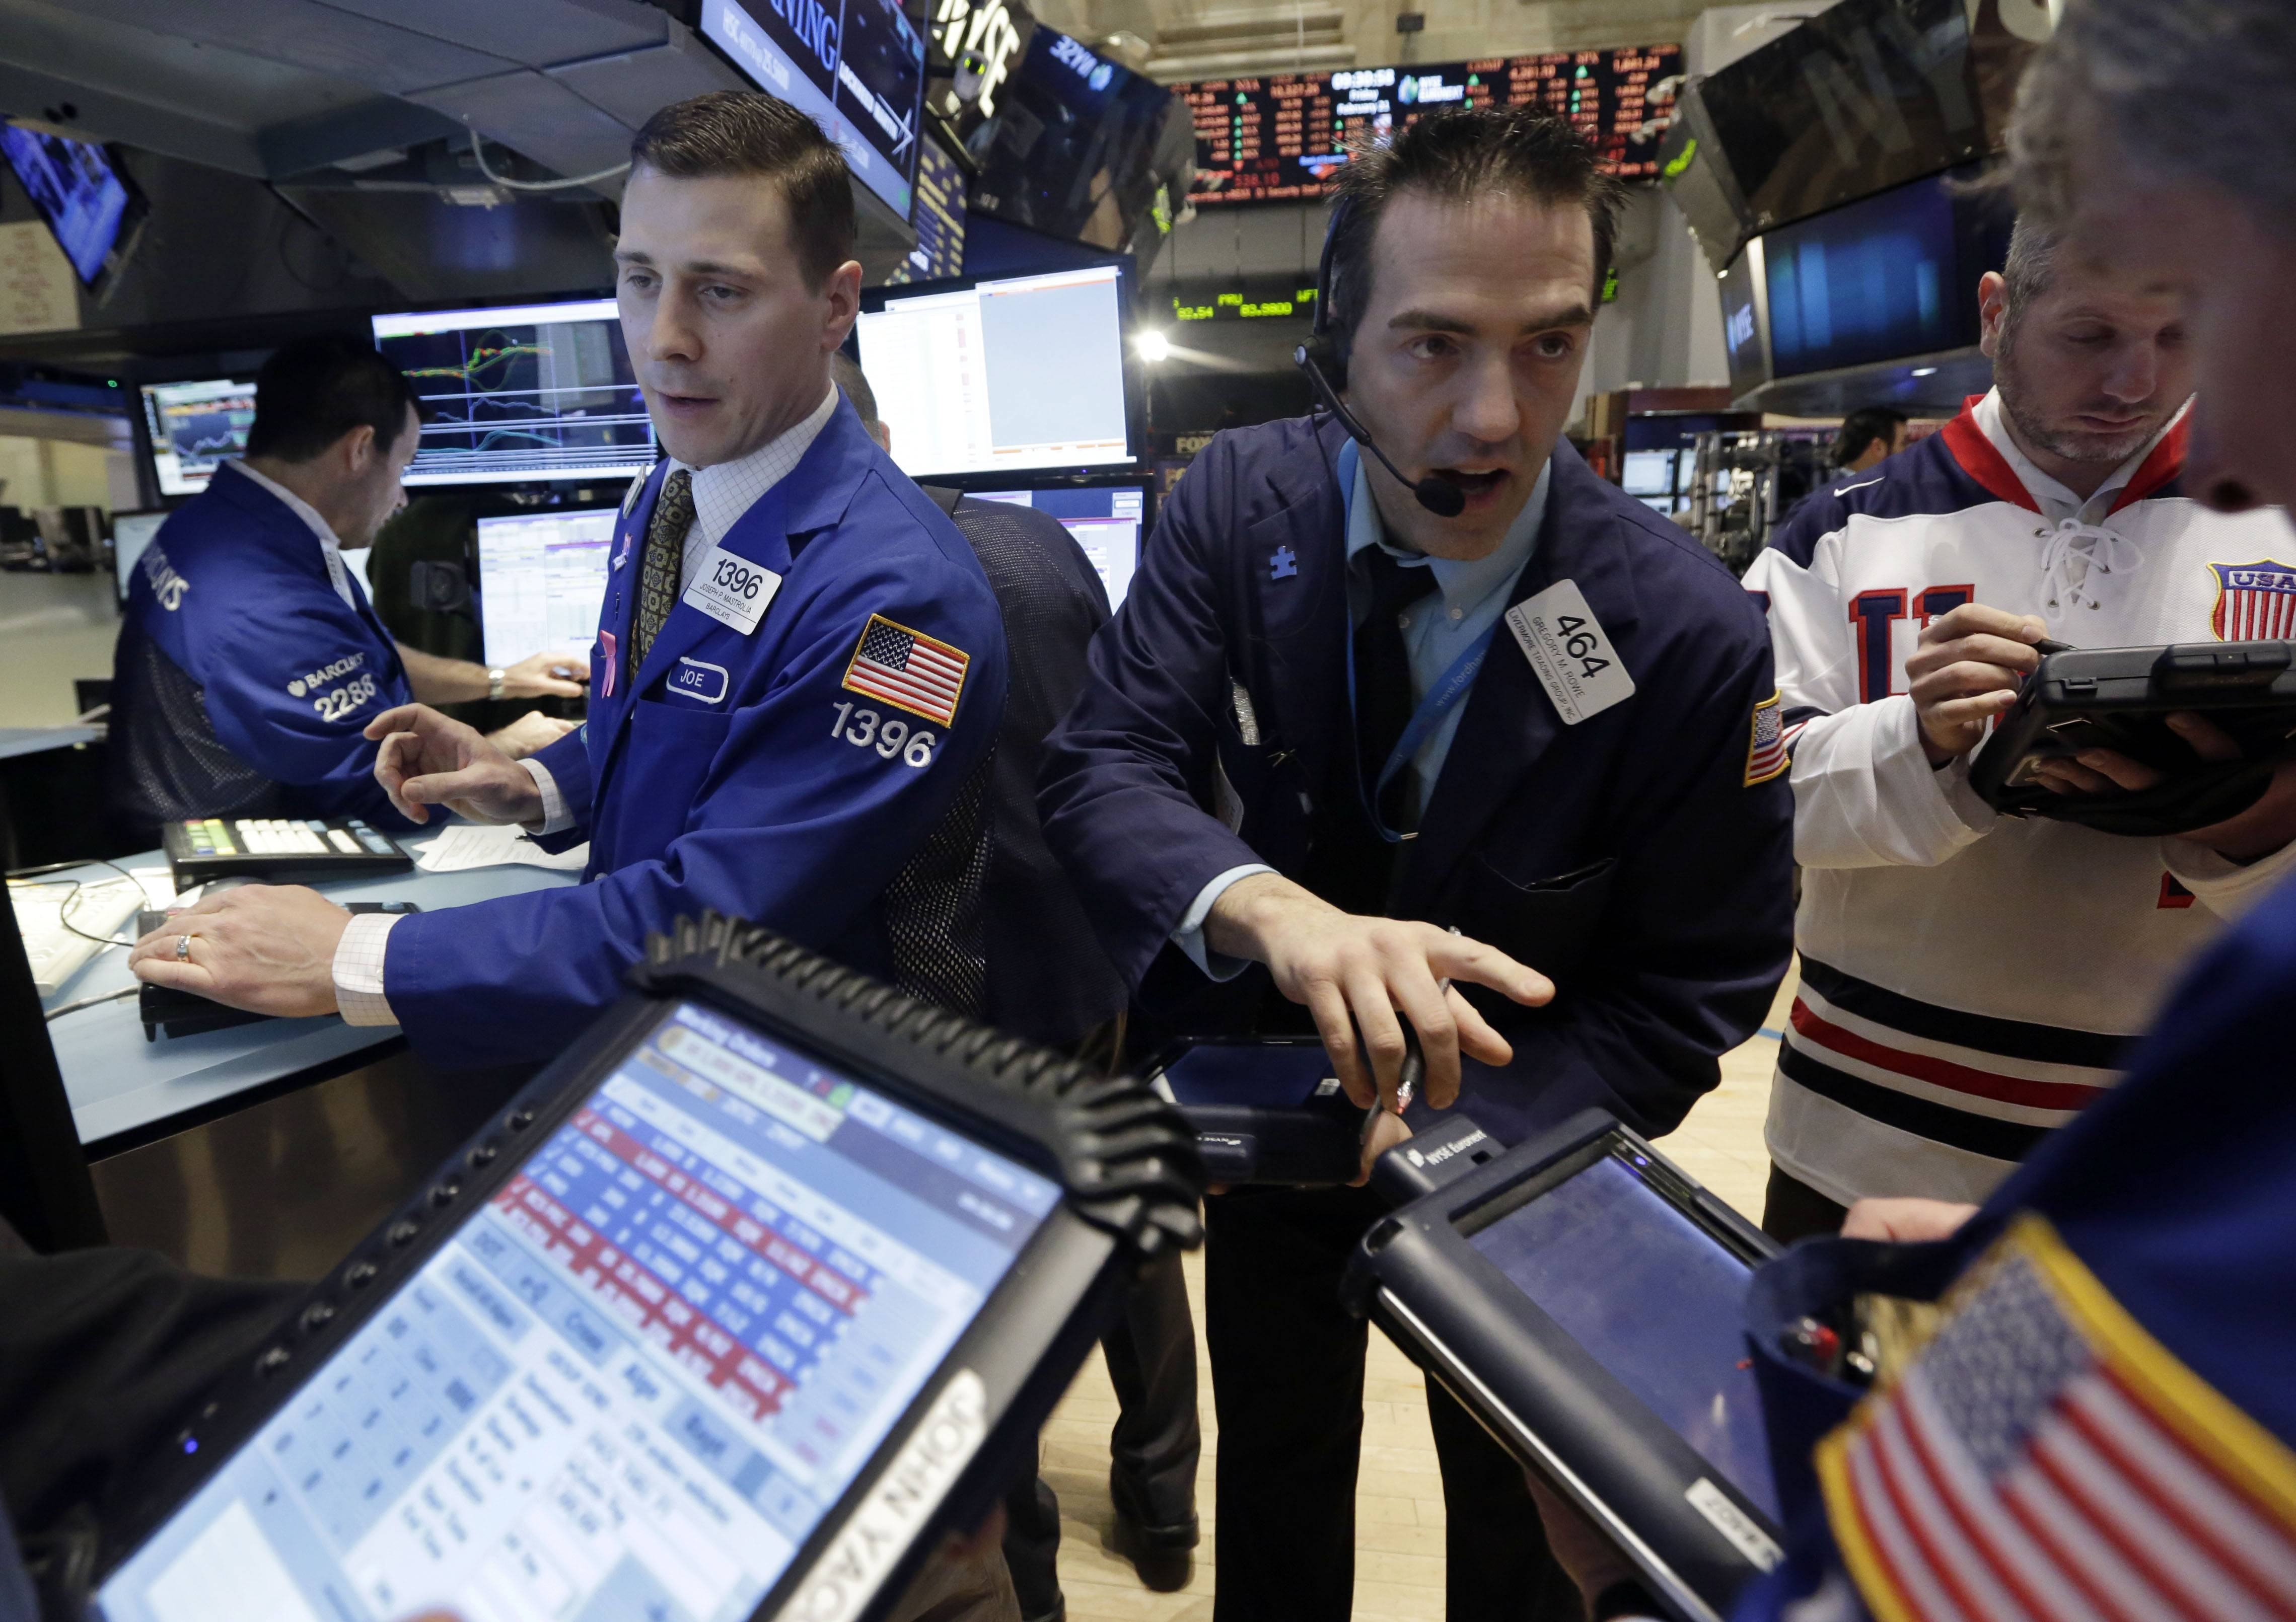 Stocks fell Tuesday, with the Standard & Poor's 500 failing to break a record for a second day, after data showed slower growth in home prices and a drop in consumer confidence.